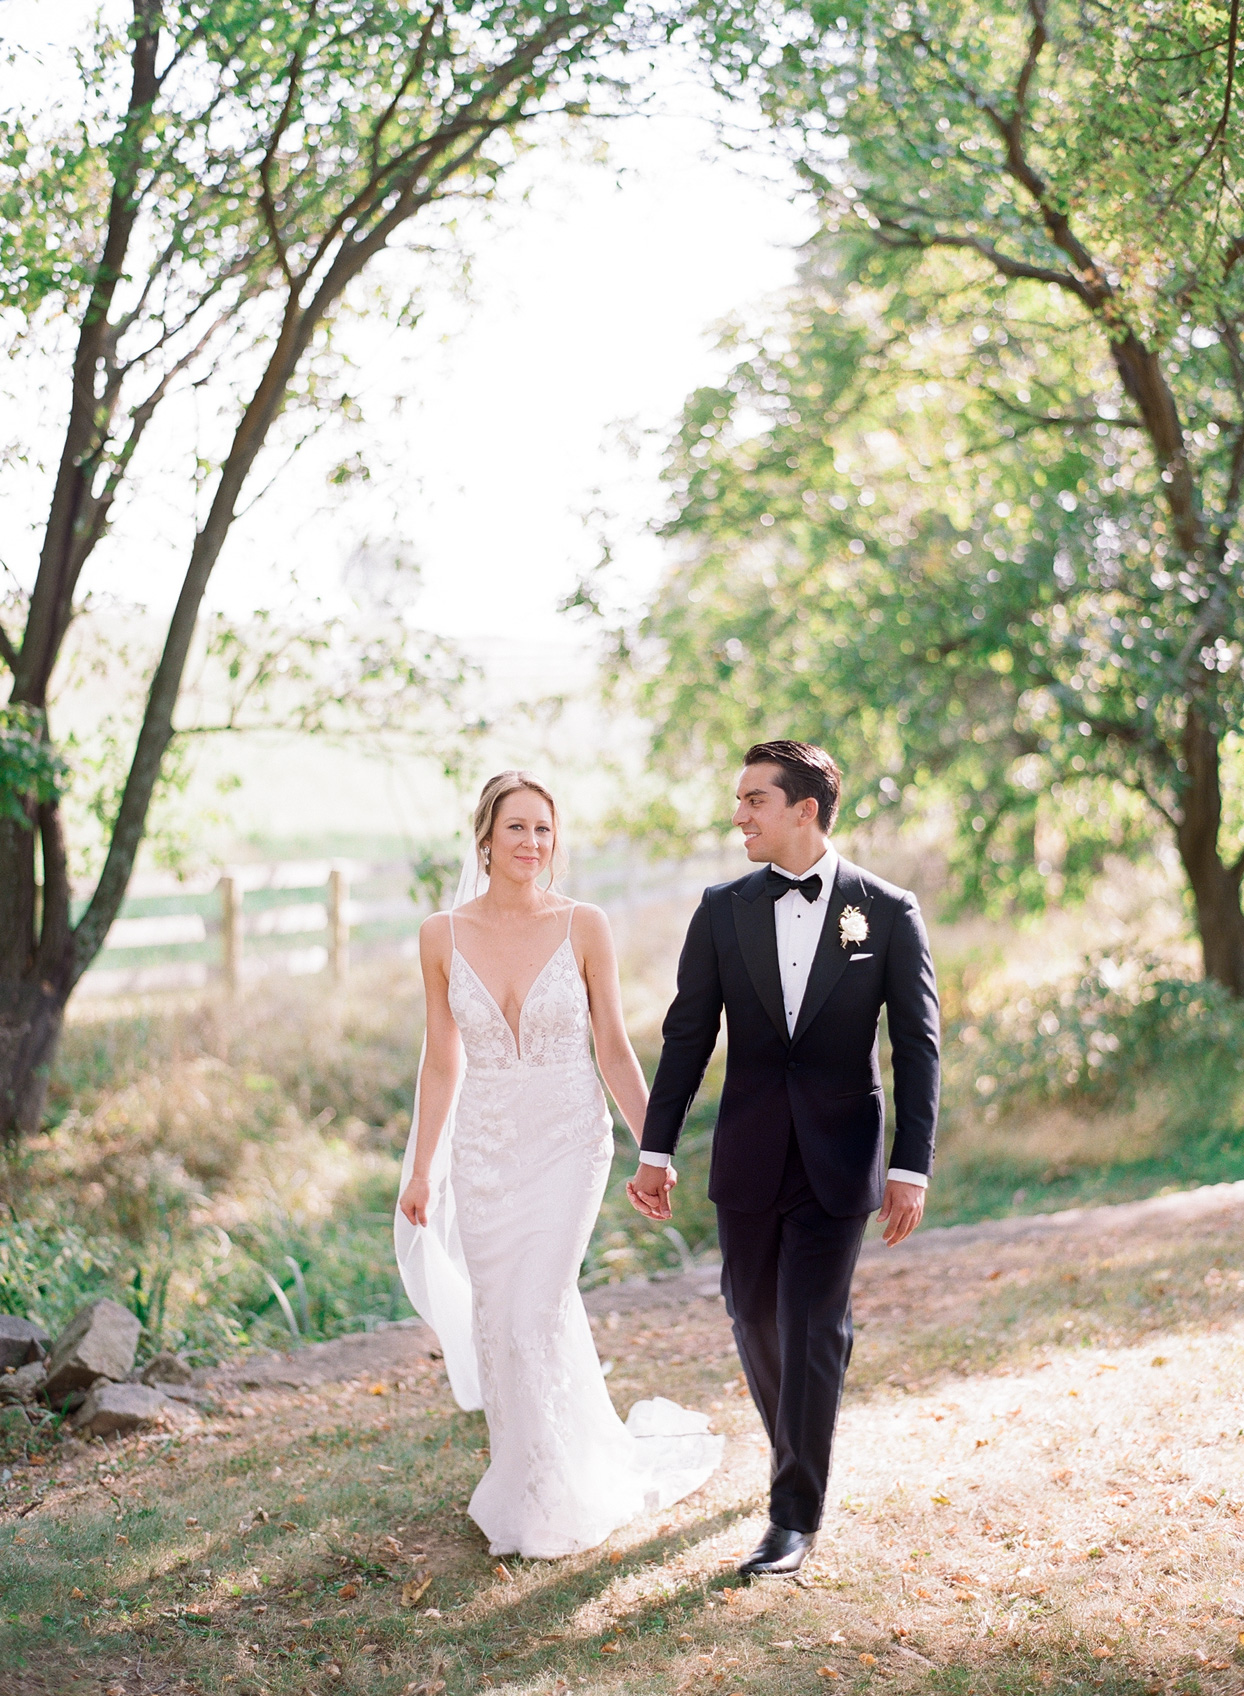 bride and groom holding hands walking in the grass under trees